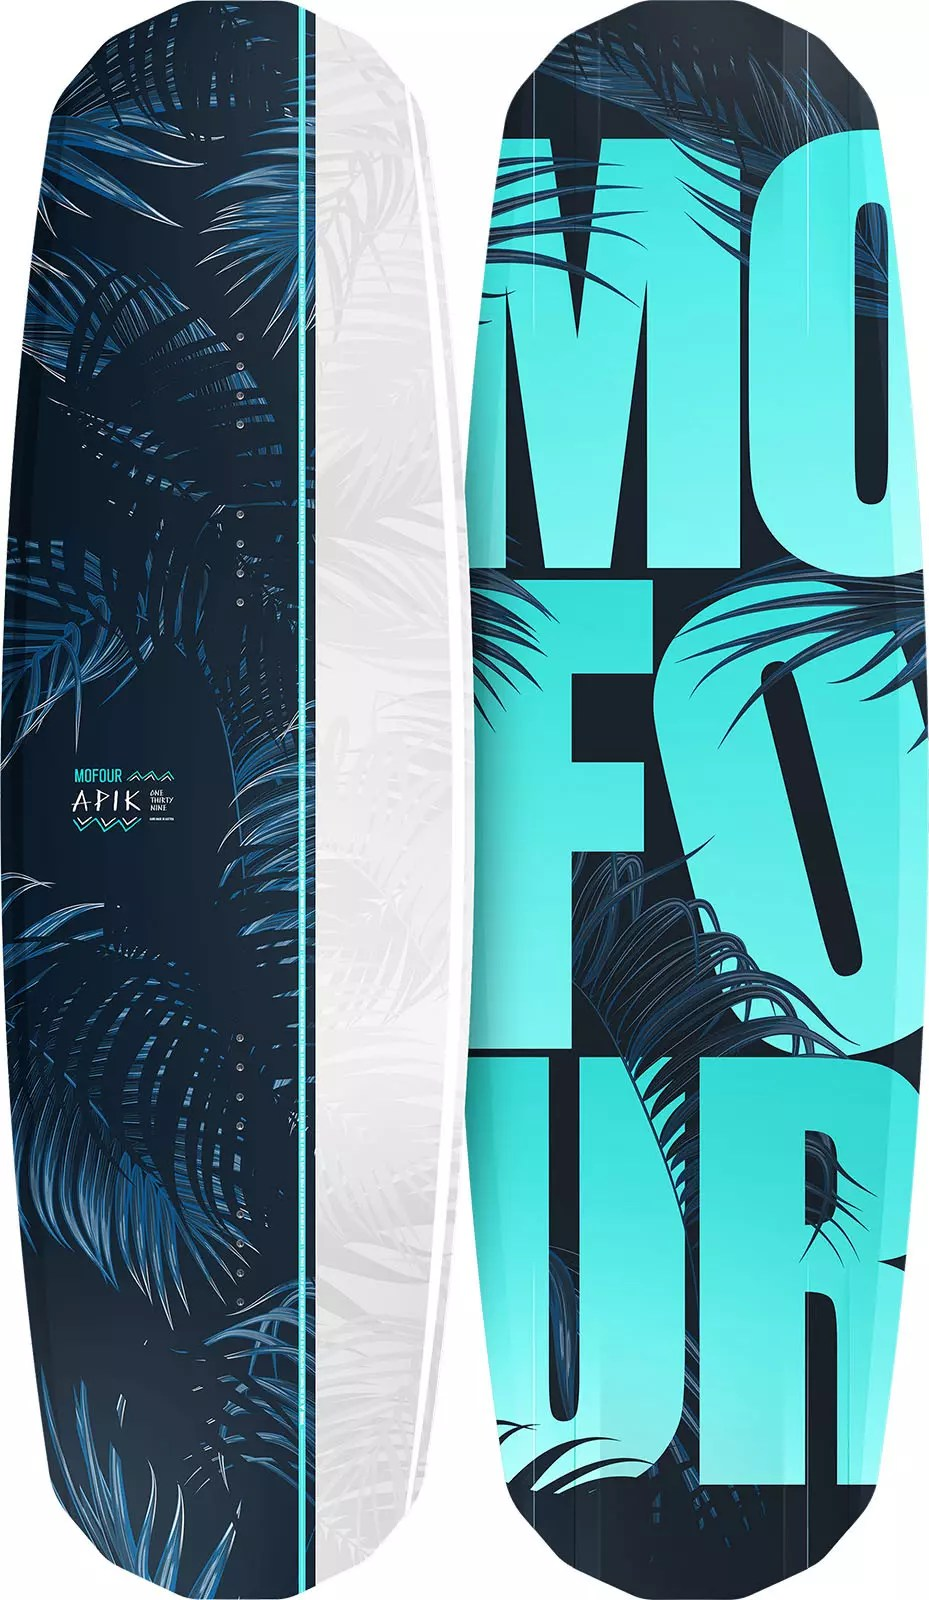 mofour wakeboards 2018 APIK